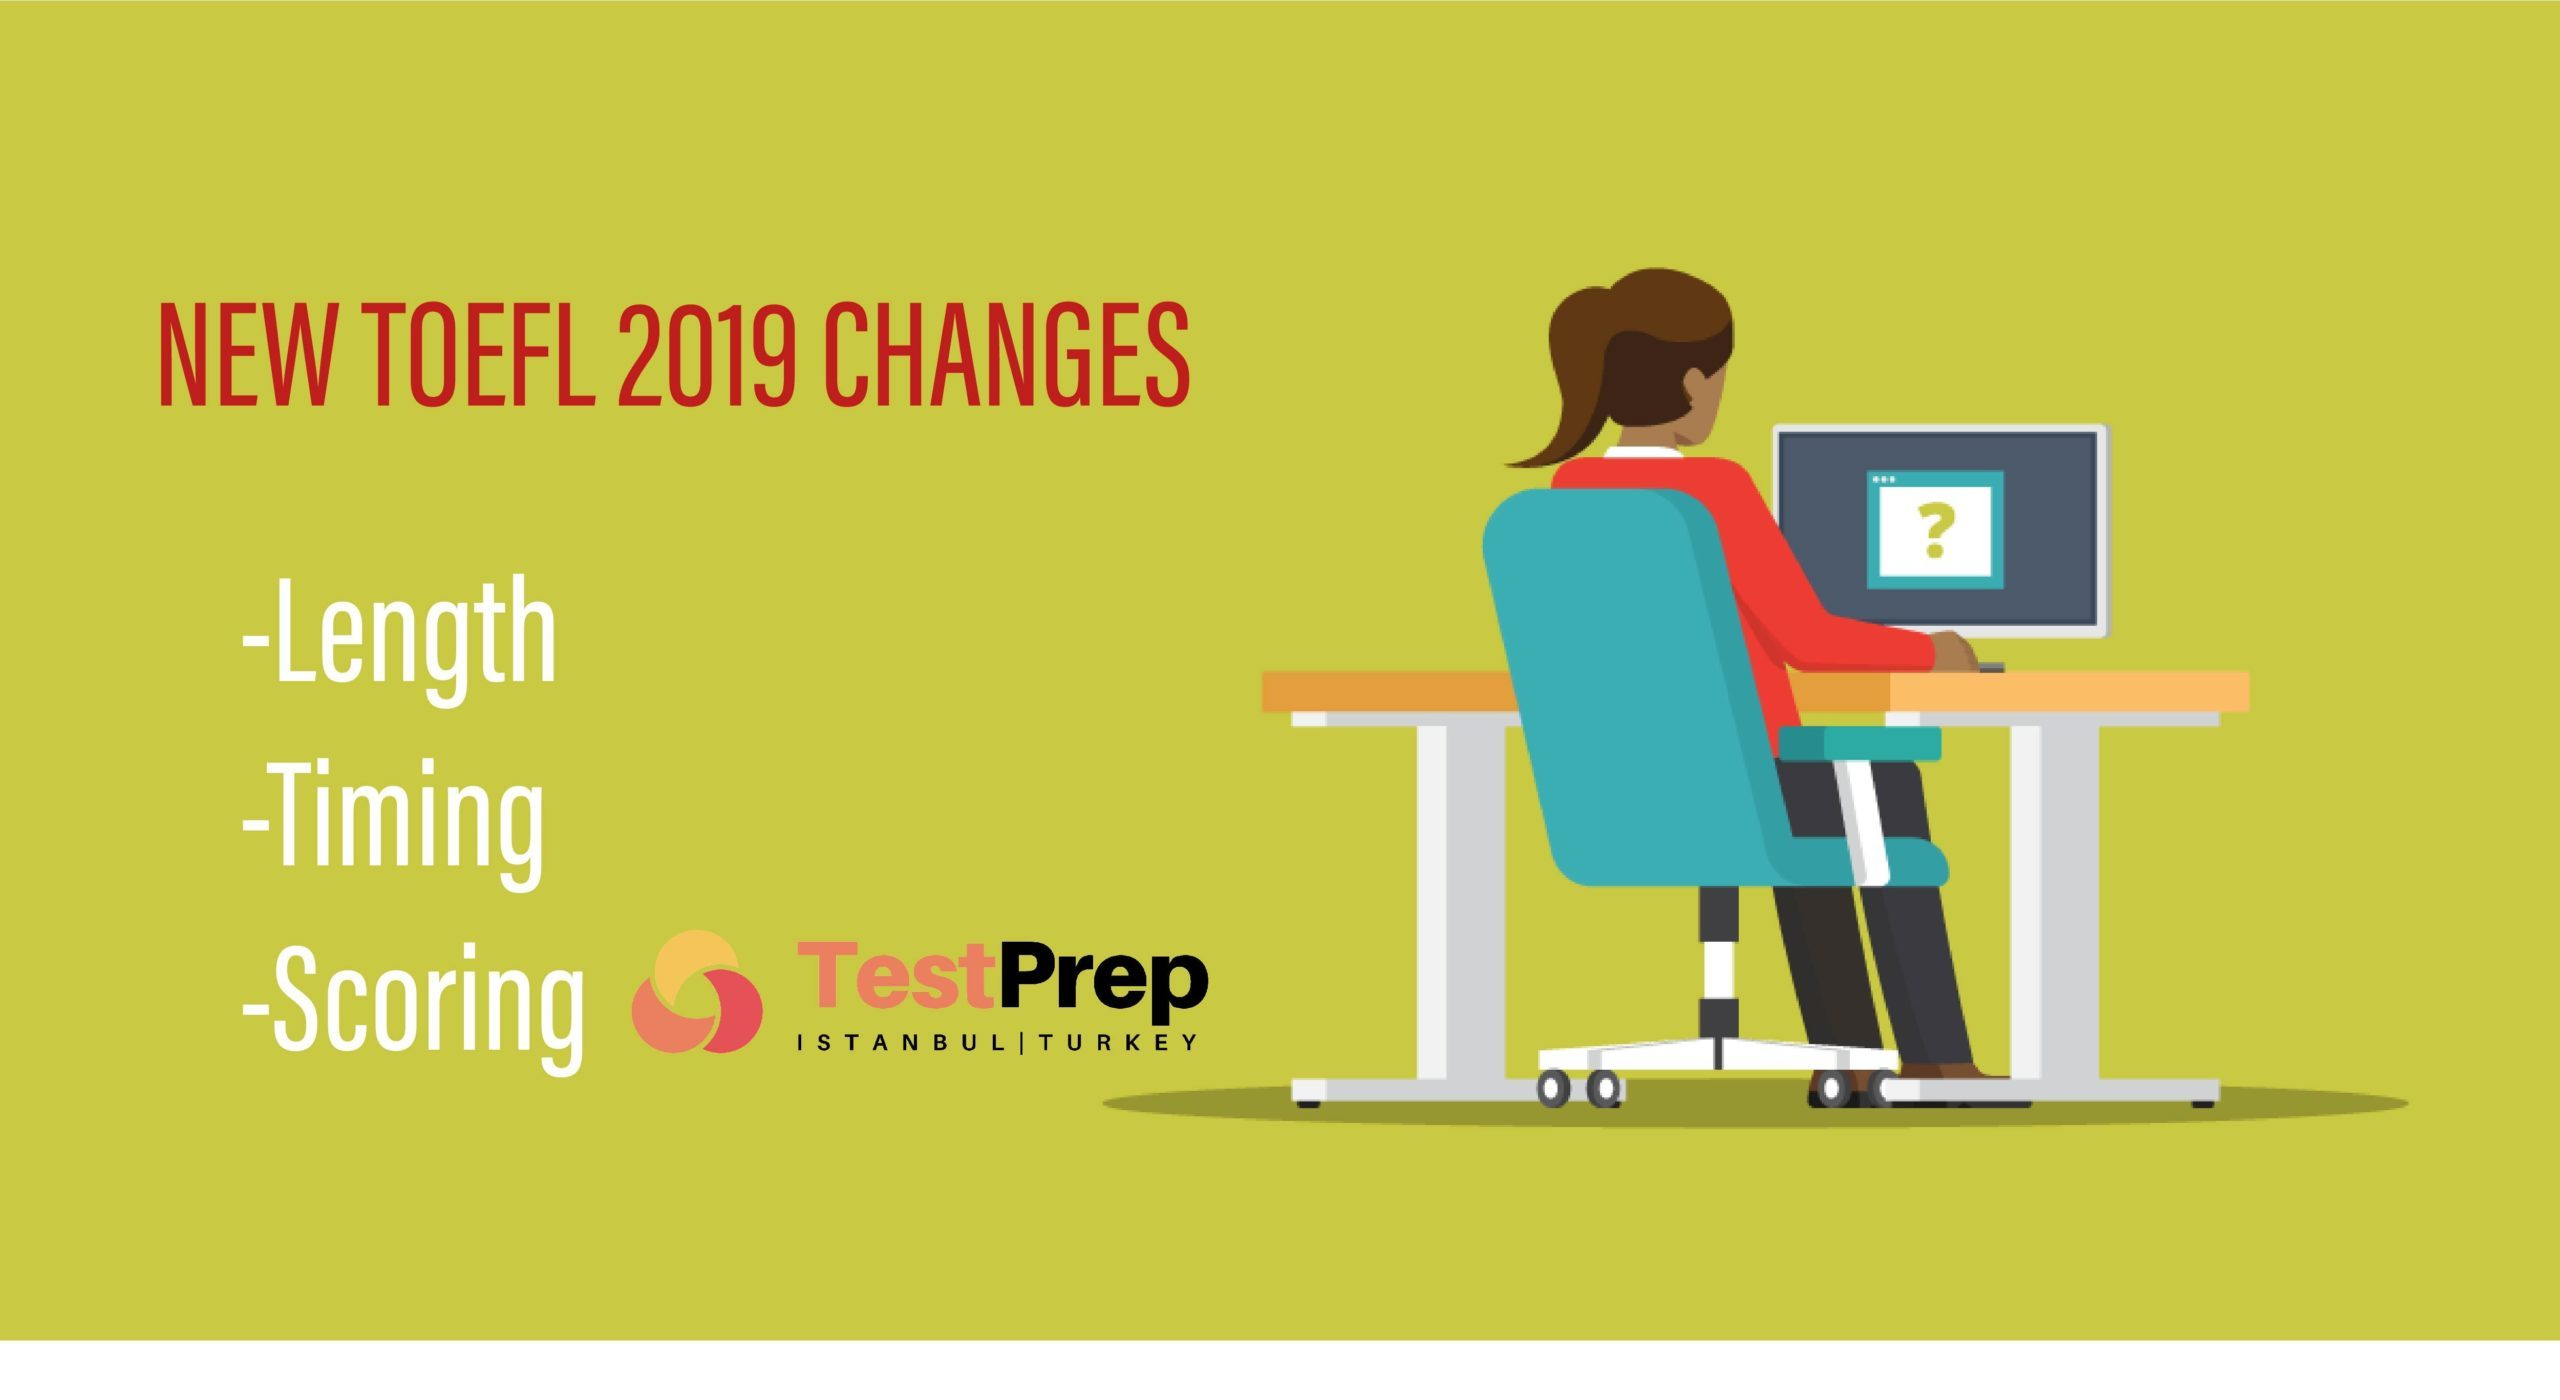 toefl 2019 changes. new toefl